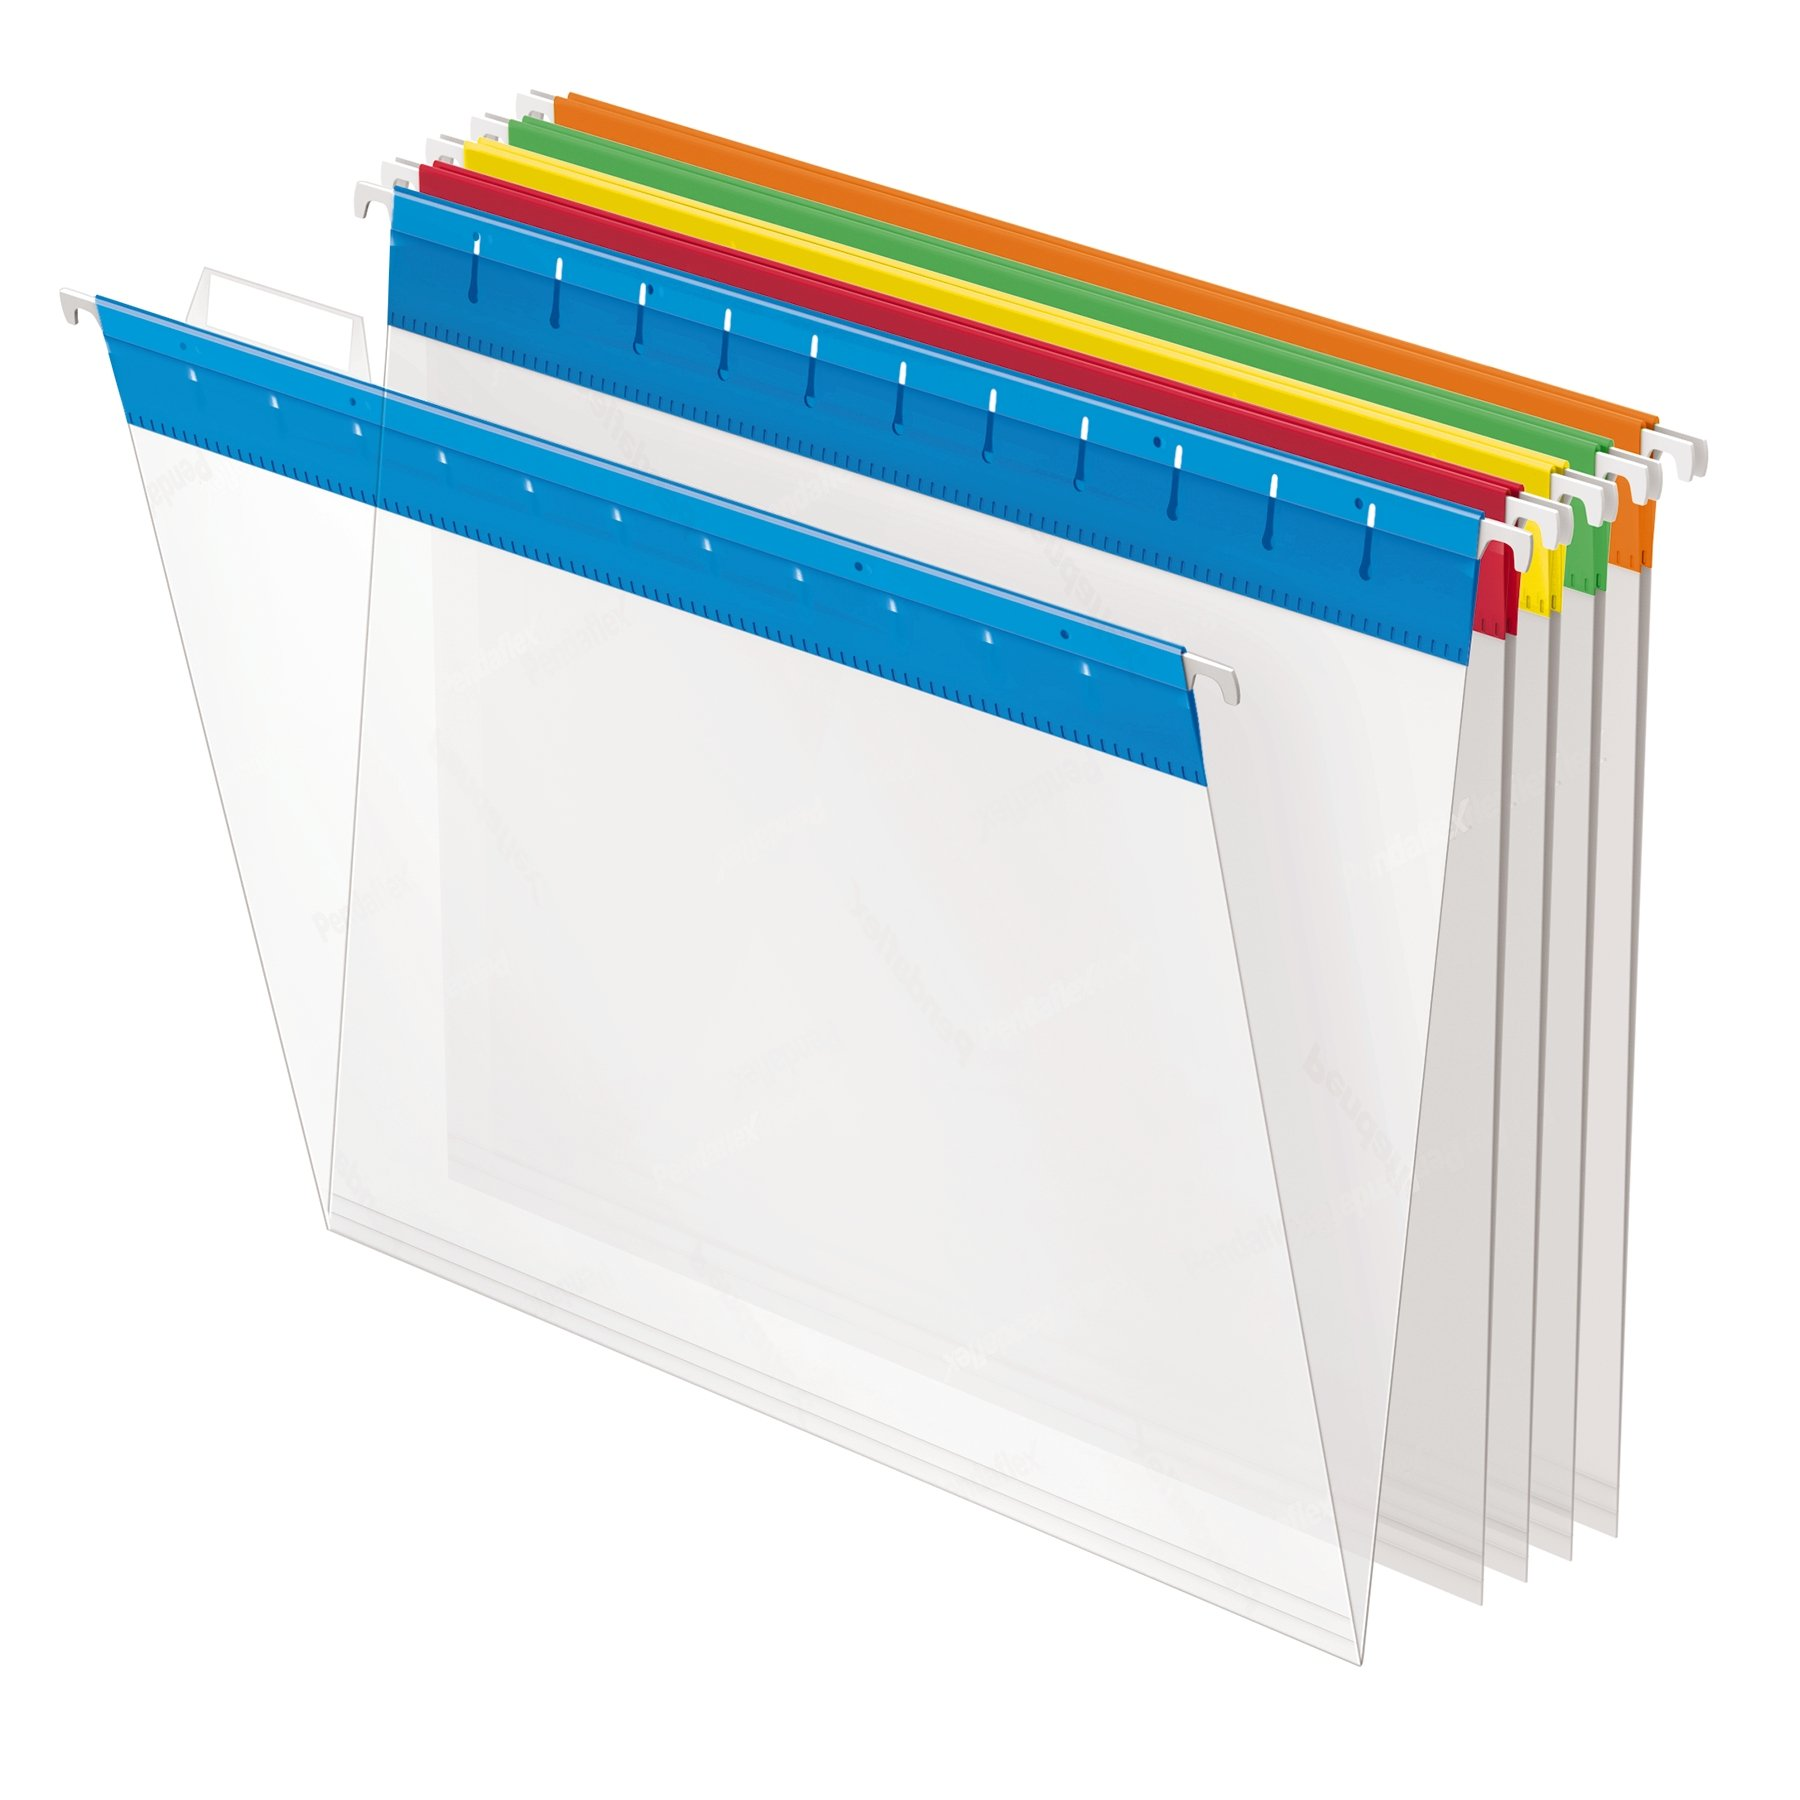 Pendaflex 55708 Poly Hanging File Folders, 1/5 Tab, Letter, Assorted Colors (Box of 25)